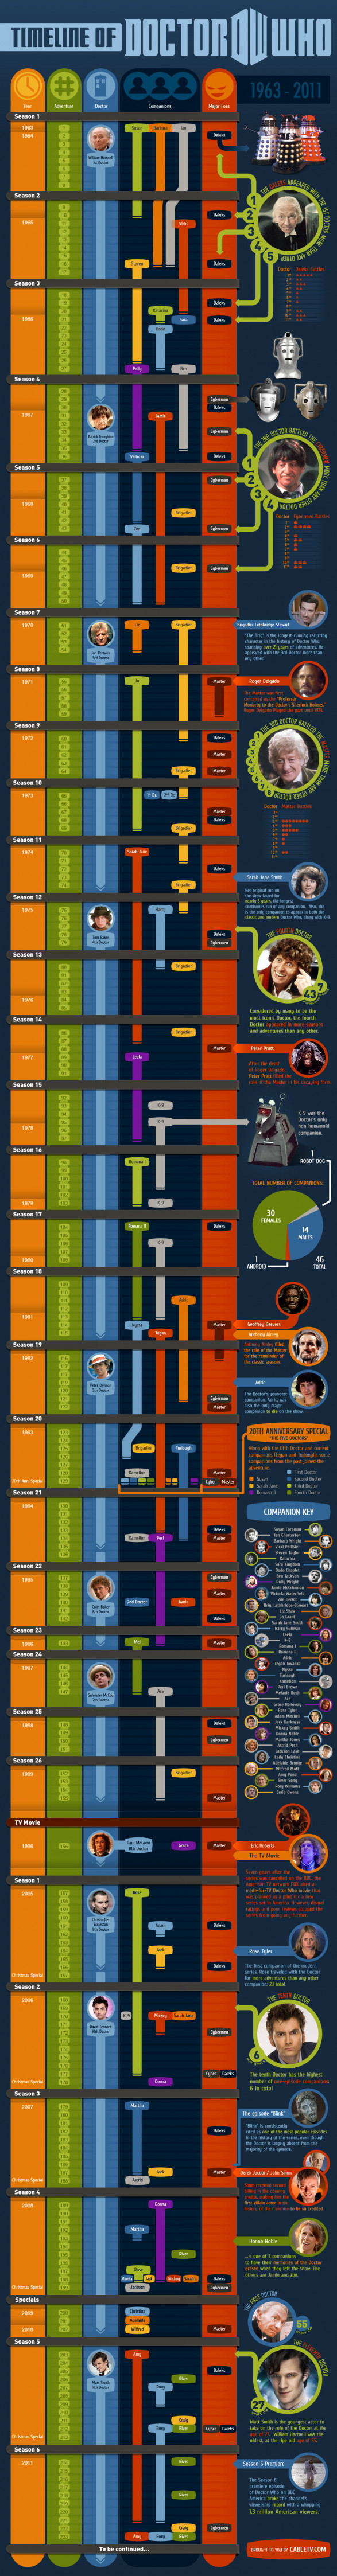 The Complete Timeline Of Doctor Who